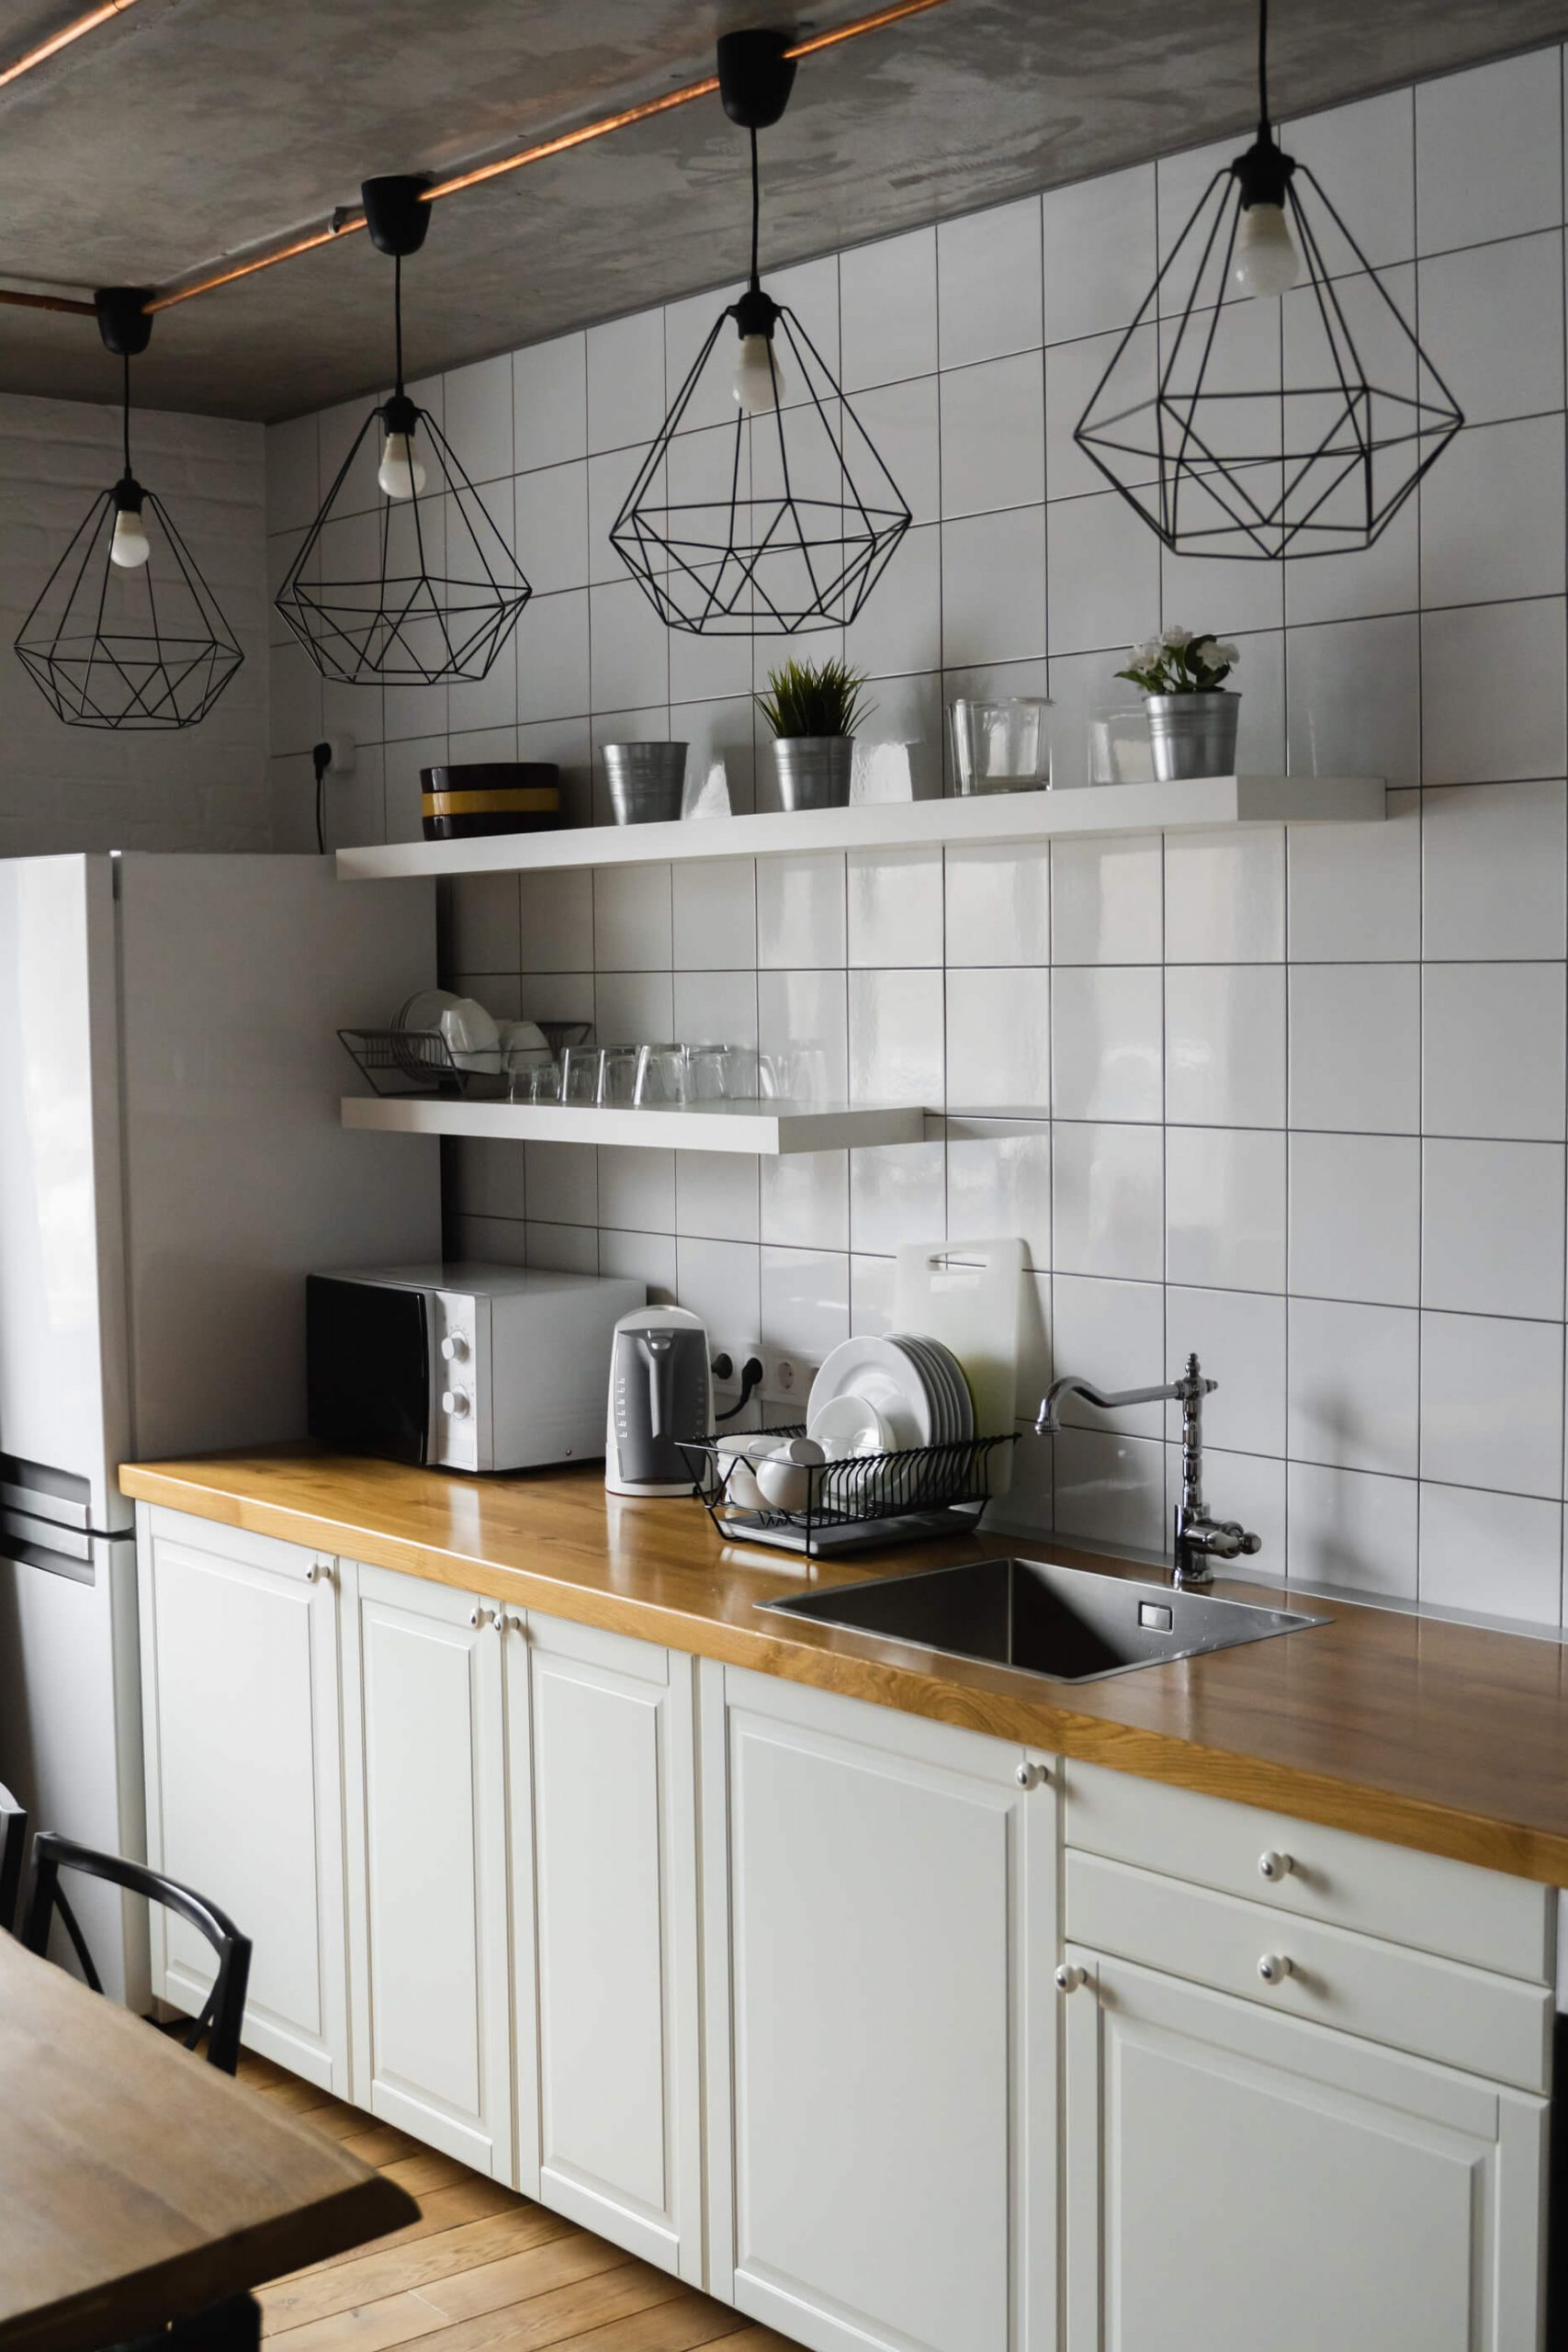 Kitchen remodeling ideas for cabinets